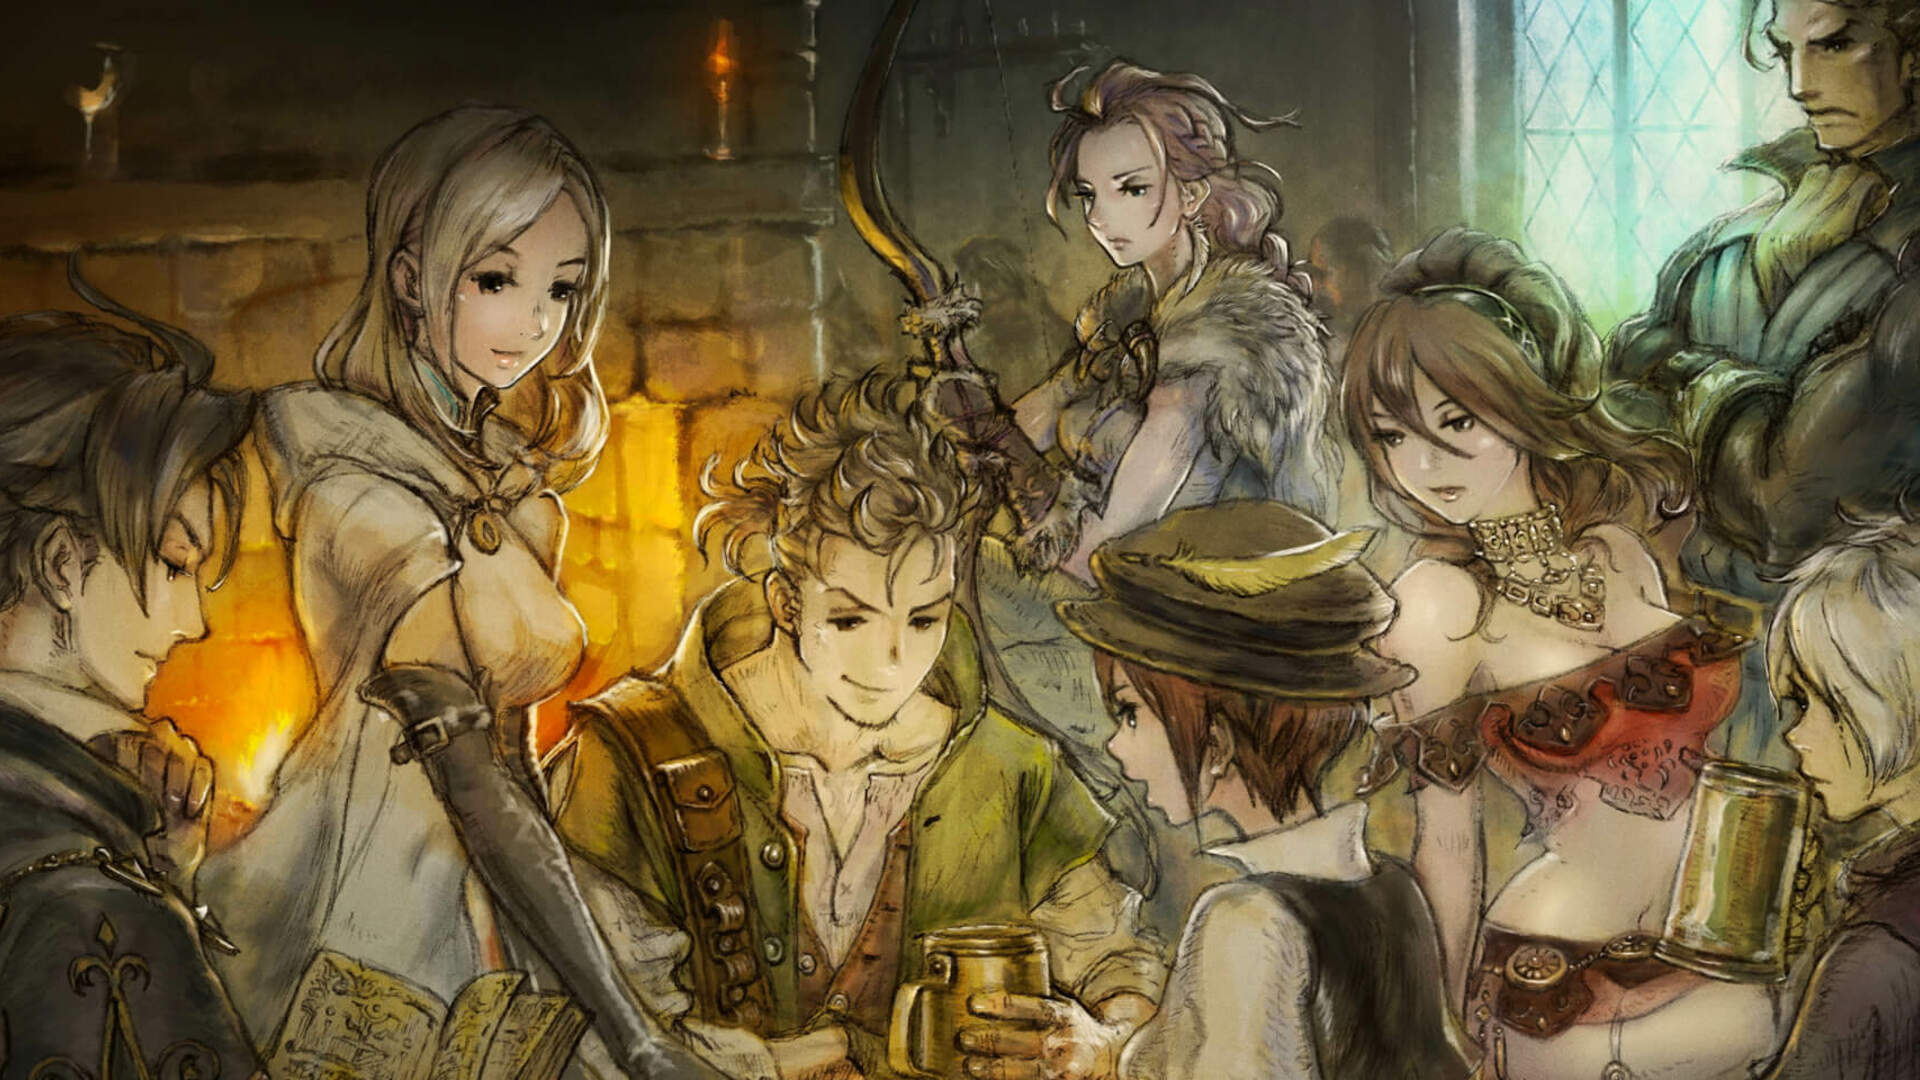 Octopath Traveler Celebrates Two Million Sales Mark With Bravely Default Crossover Art